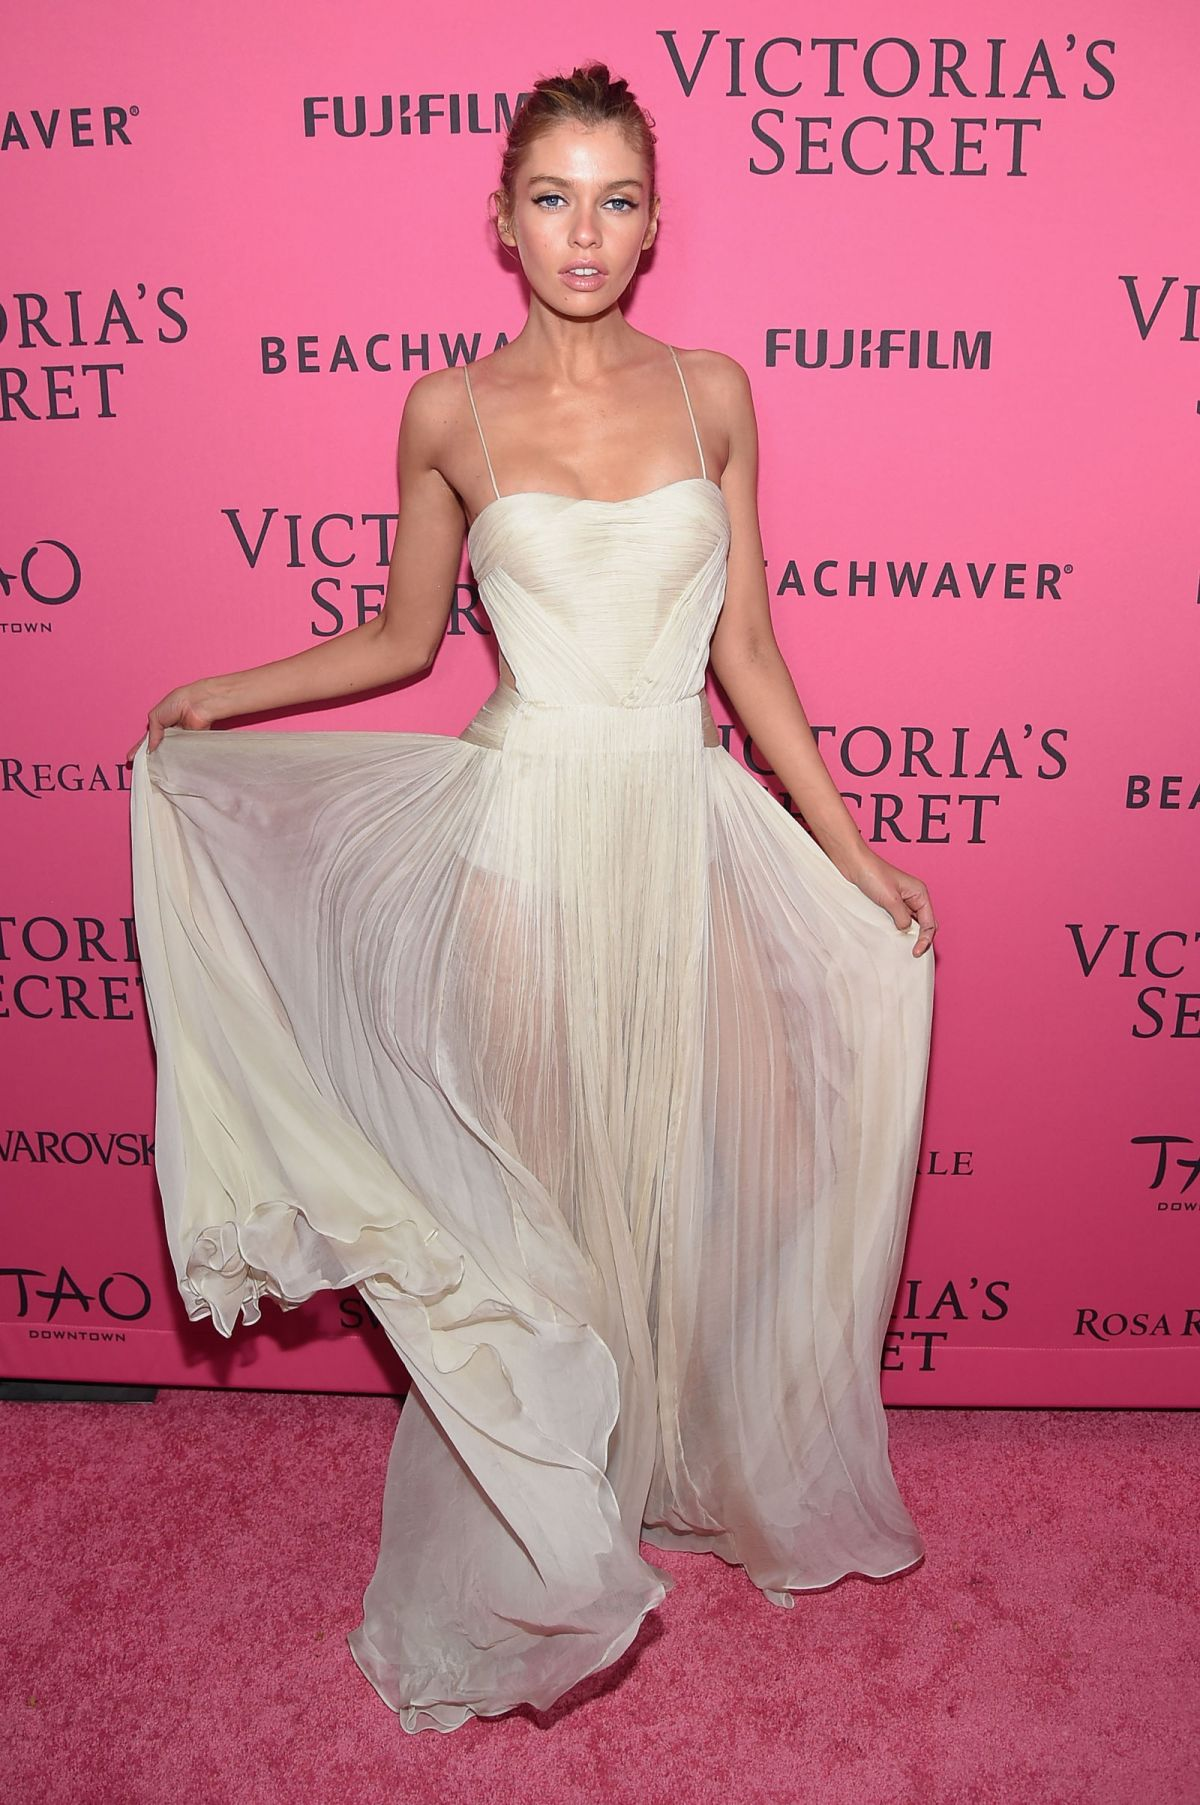 STELLA MAXWELL at Victoria's Secret 2015 Fashion Show After Party 11/10/2015